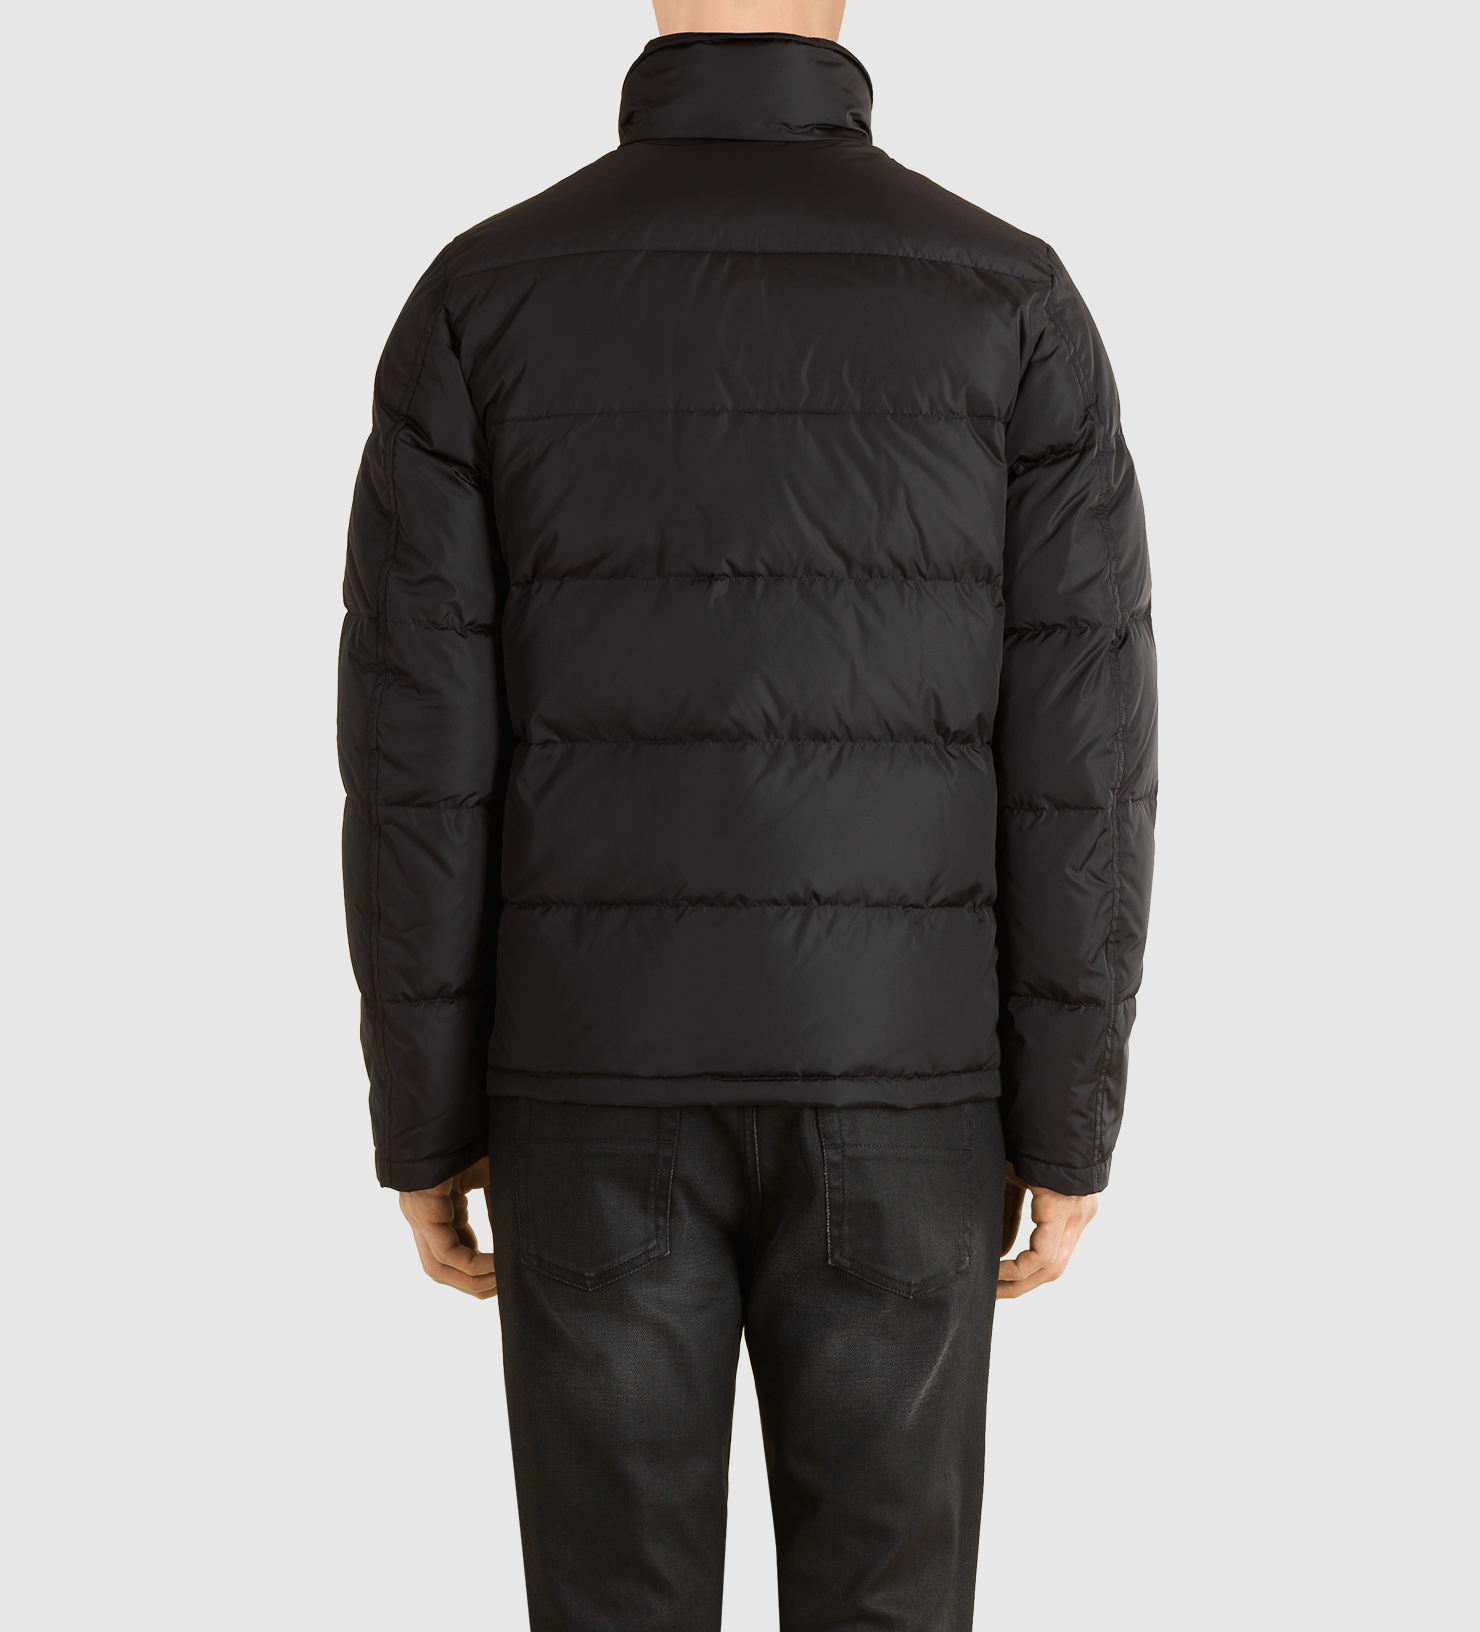 Free shipping on Canada Goose jackets at coolvloadx4.ga Shop down and fur-trimmed jackets, parkas and vests. Totally free shipping and returns.